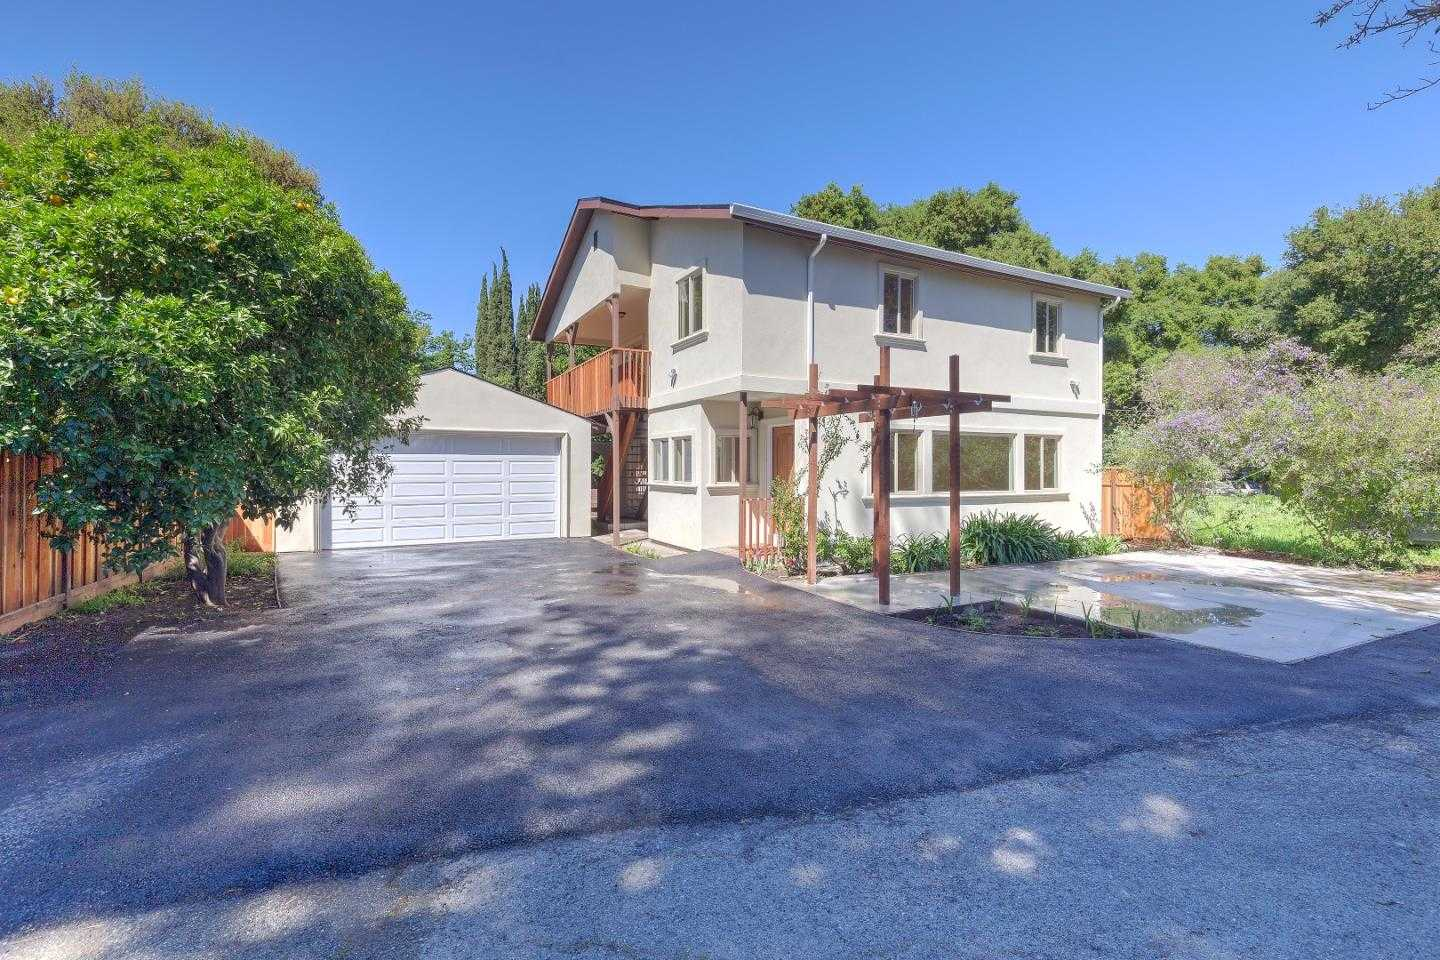 $1,350,000 - 5Br/2Ba -  for Sale in East Palo Alto